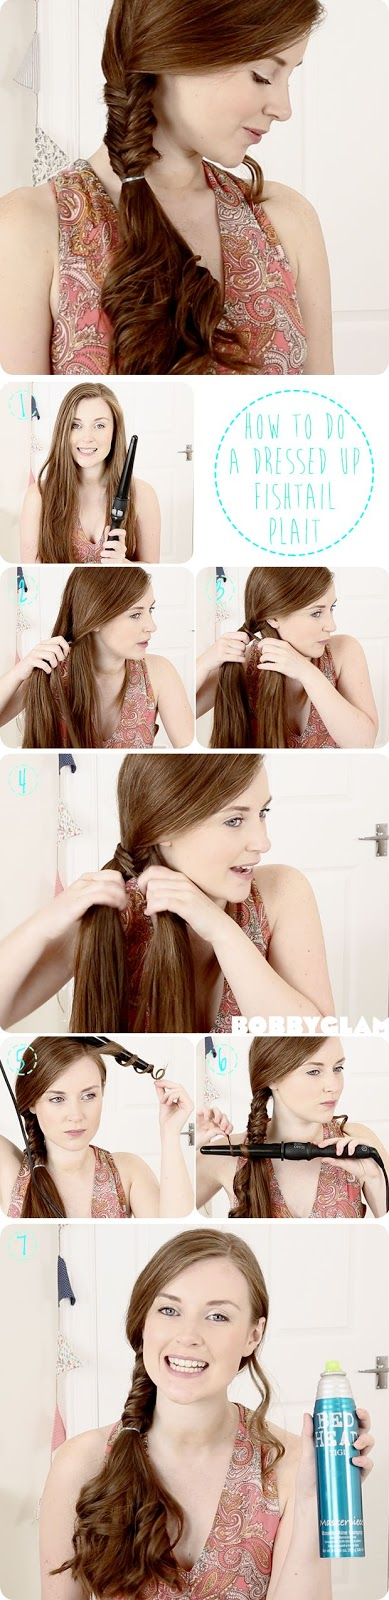 http://www.bobbyglam.com/blog/wp-content/uploads/2013/06/How-to-do-a-dressed-up-fishtail-braid.jpg